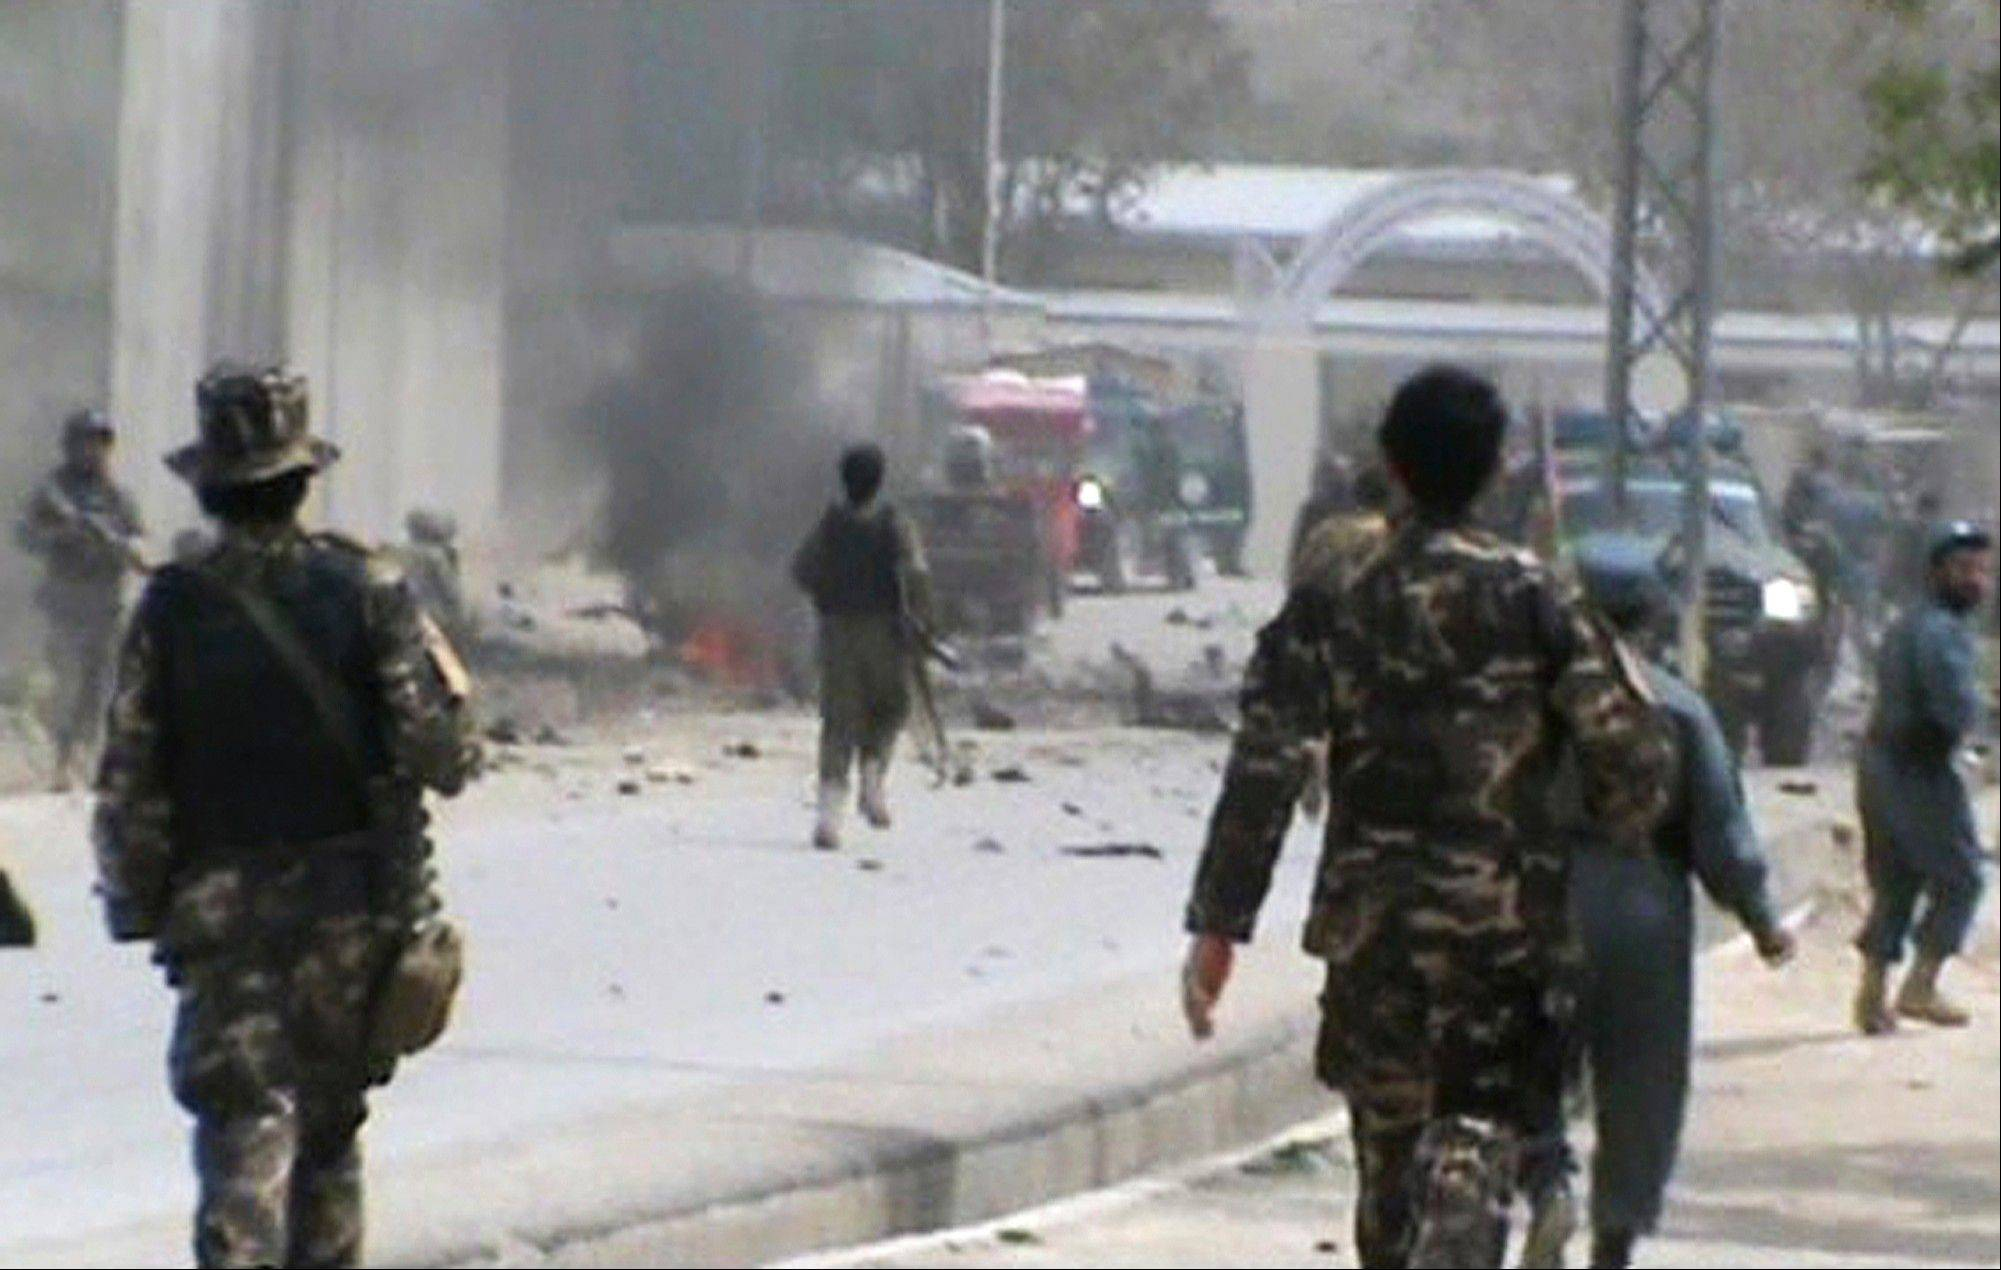 This image made from AP video shows Afghan National Army soldiers rushing to the scene moments after a car bomb exploded in front the PRT, Provincial Reconstruction Team, in Qalat, Zabul province, southern Afghanistan, Saturday, April 6, 2013. Three U.S. soldiers, two U.S. civilians and a doctor were killed when a suicide bomber detonated a car full of explosives just as a convoy with the international military coalition drove past another convoy of vehicles carrying the governor of Zabul province.